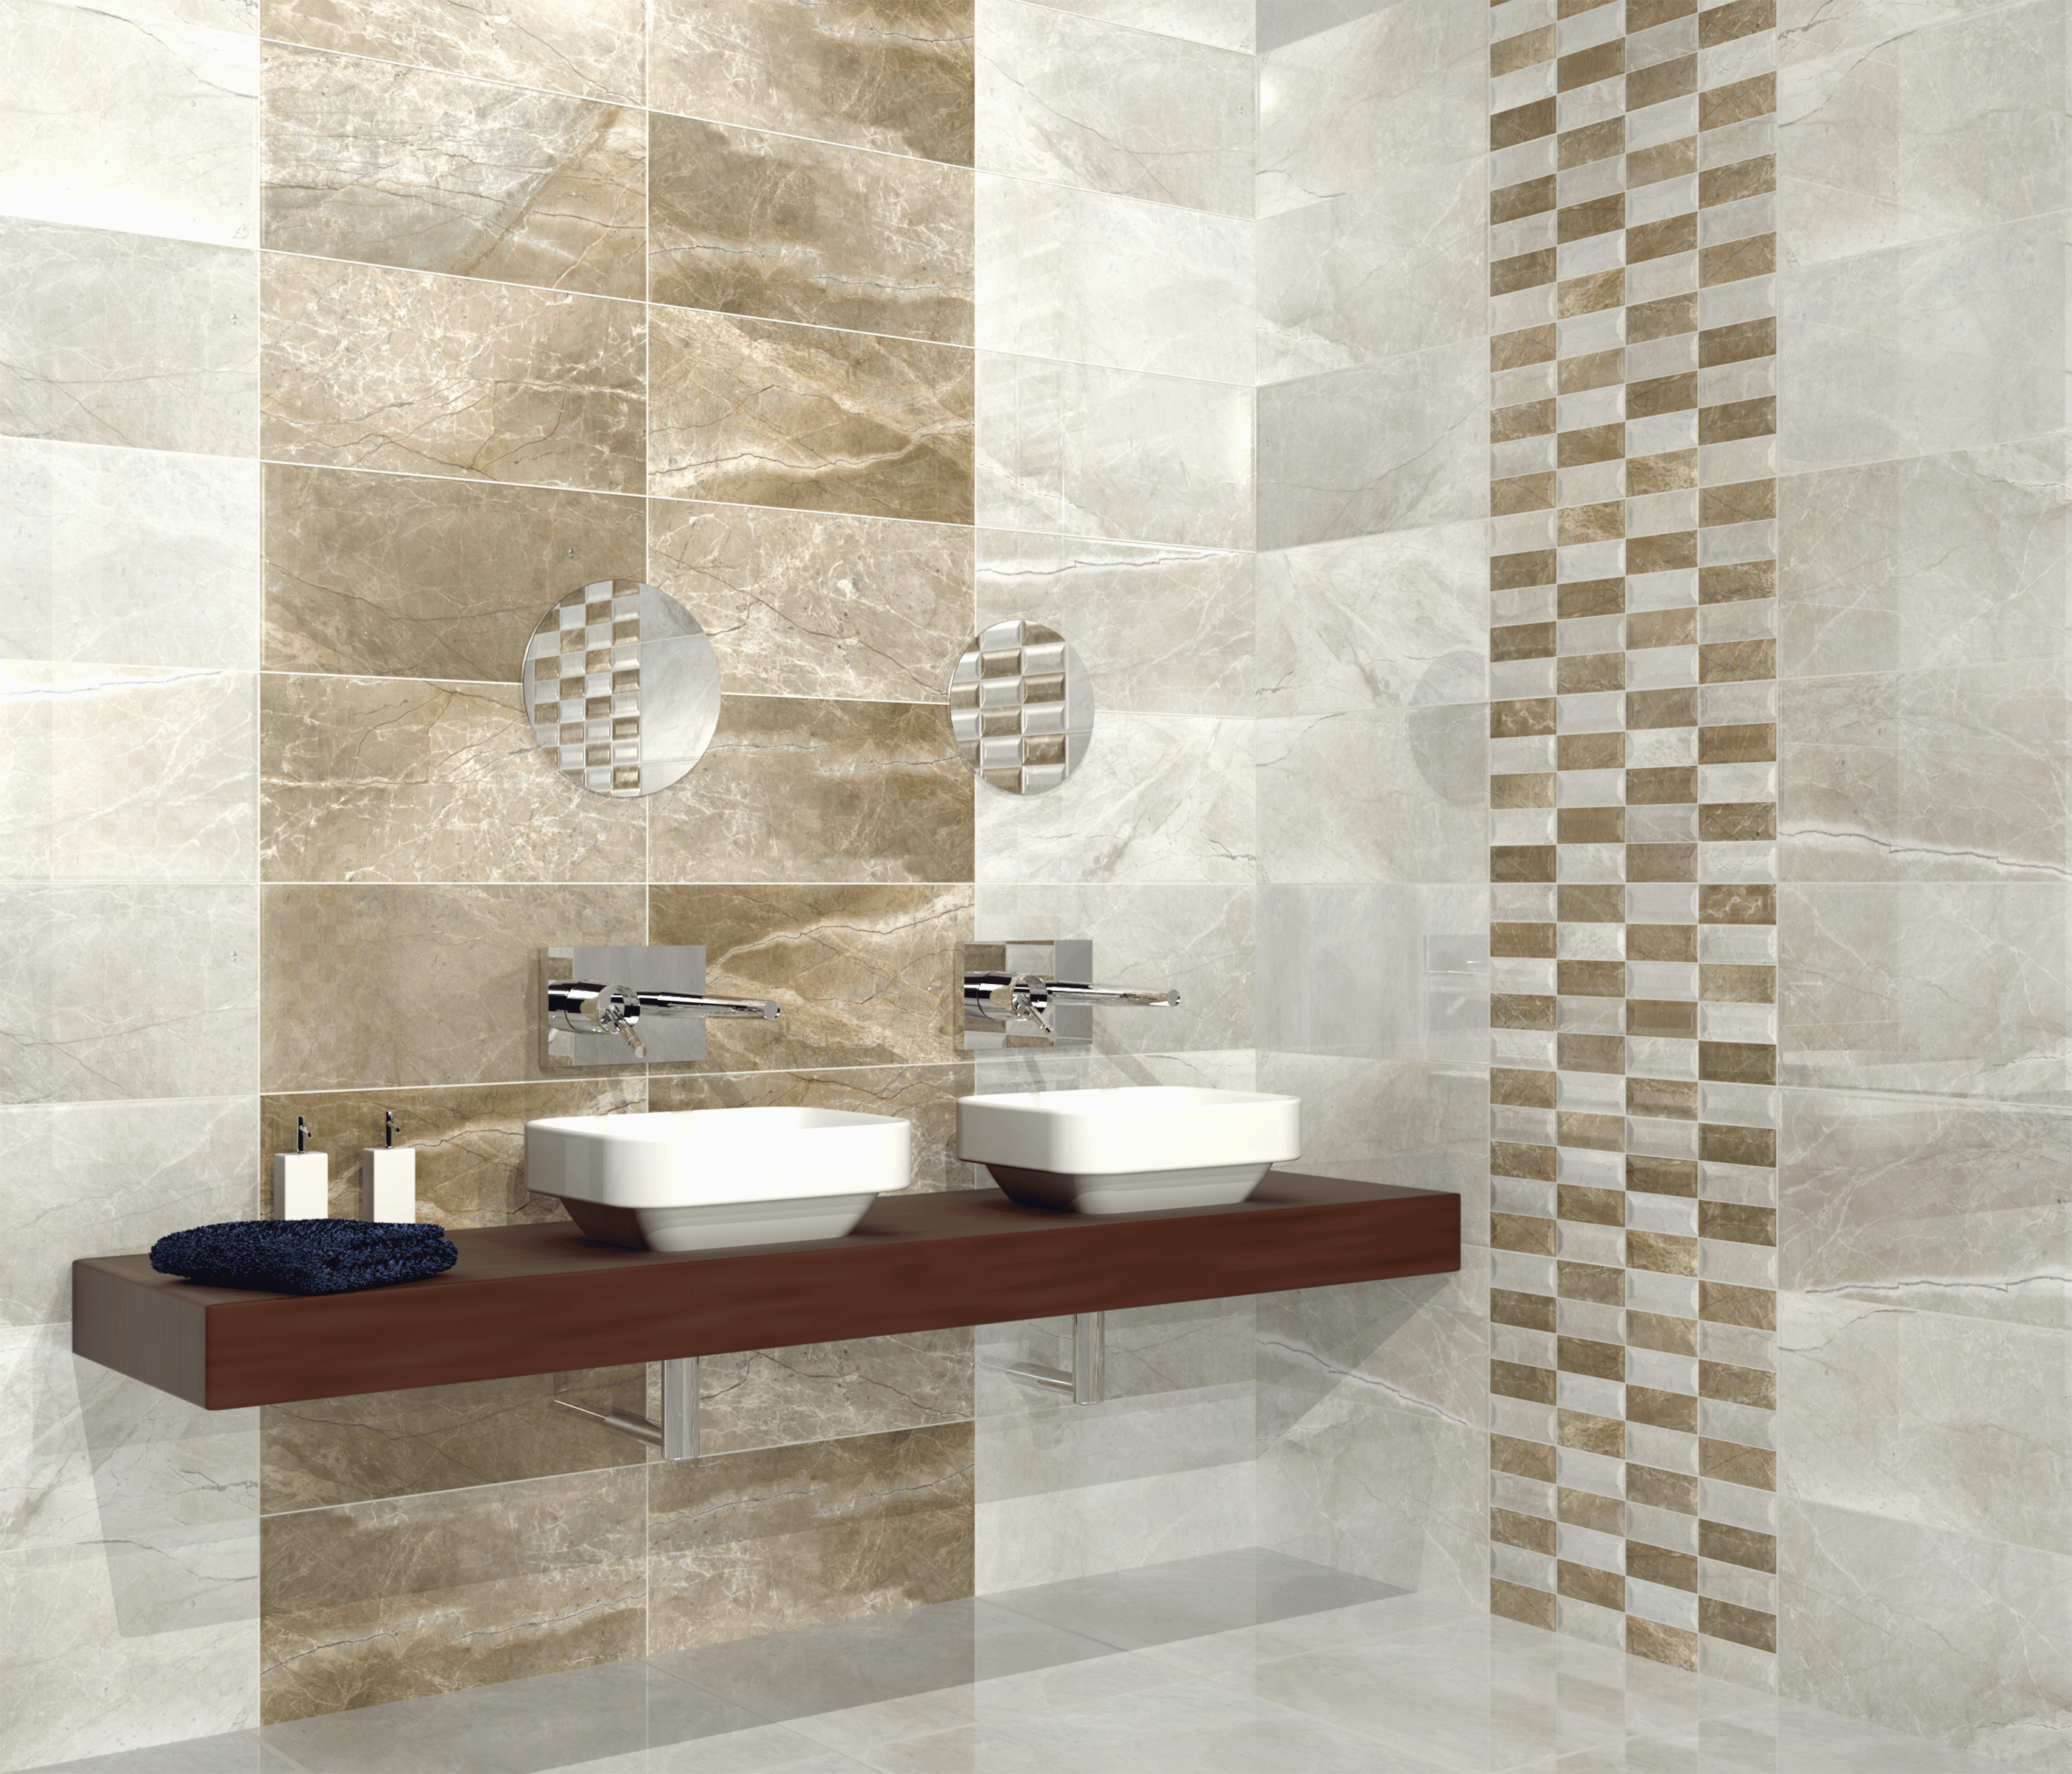 3 handy tips for choosing bathroom tiles